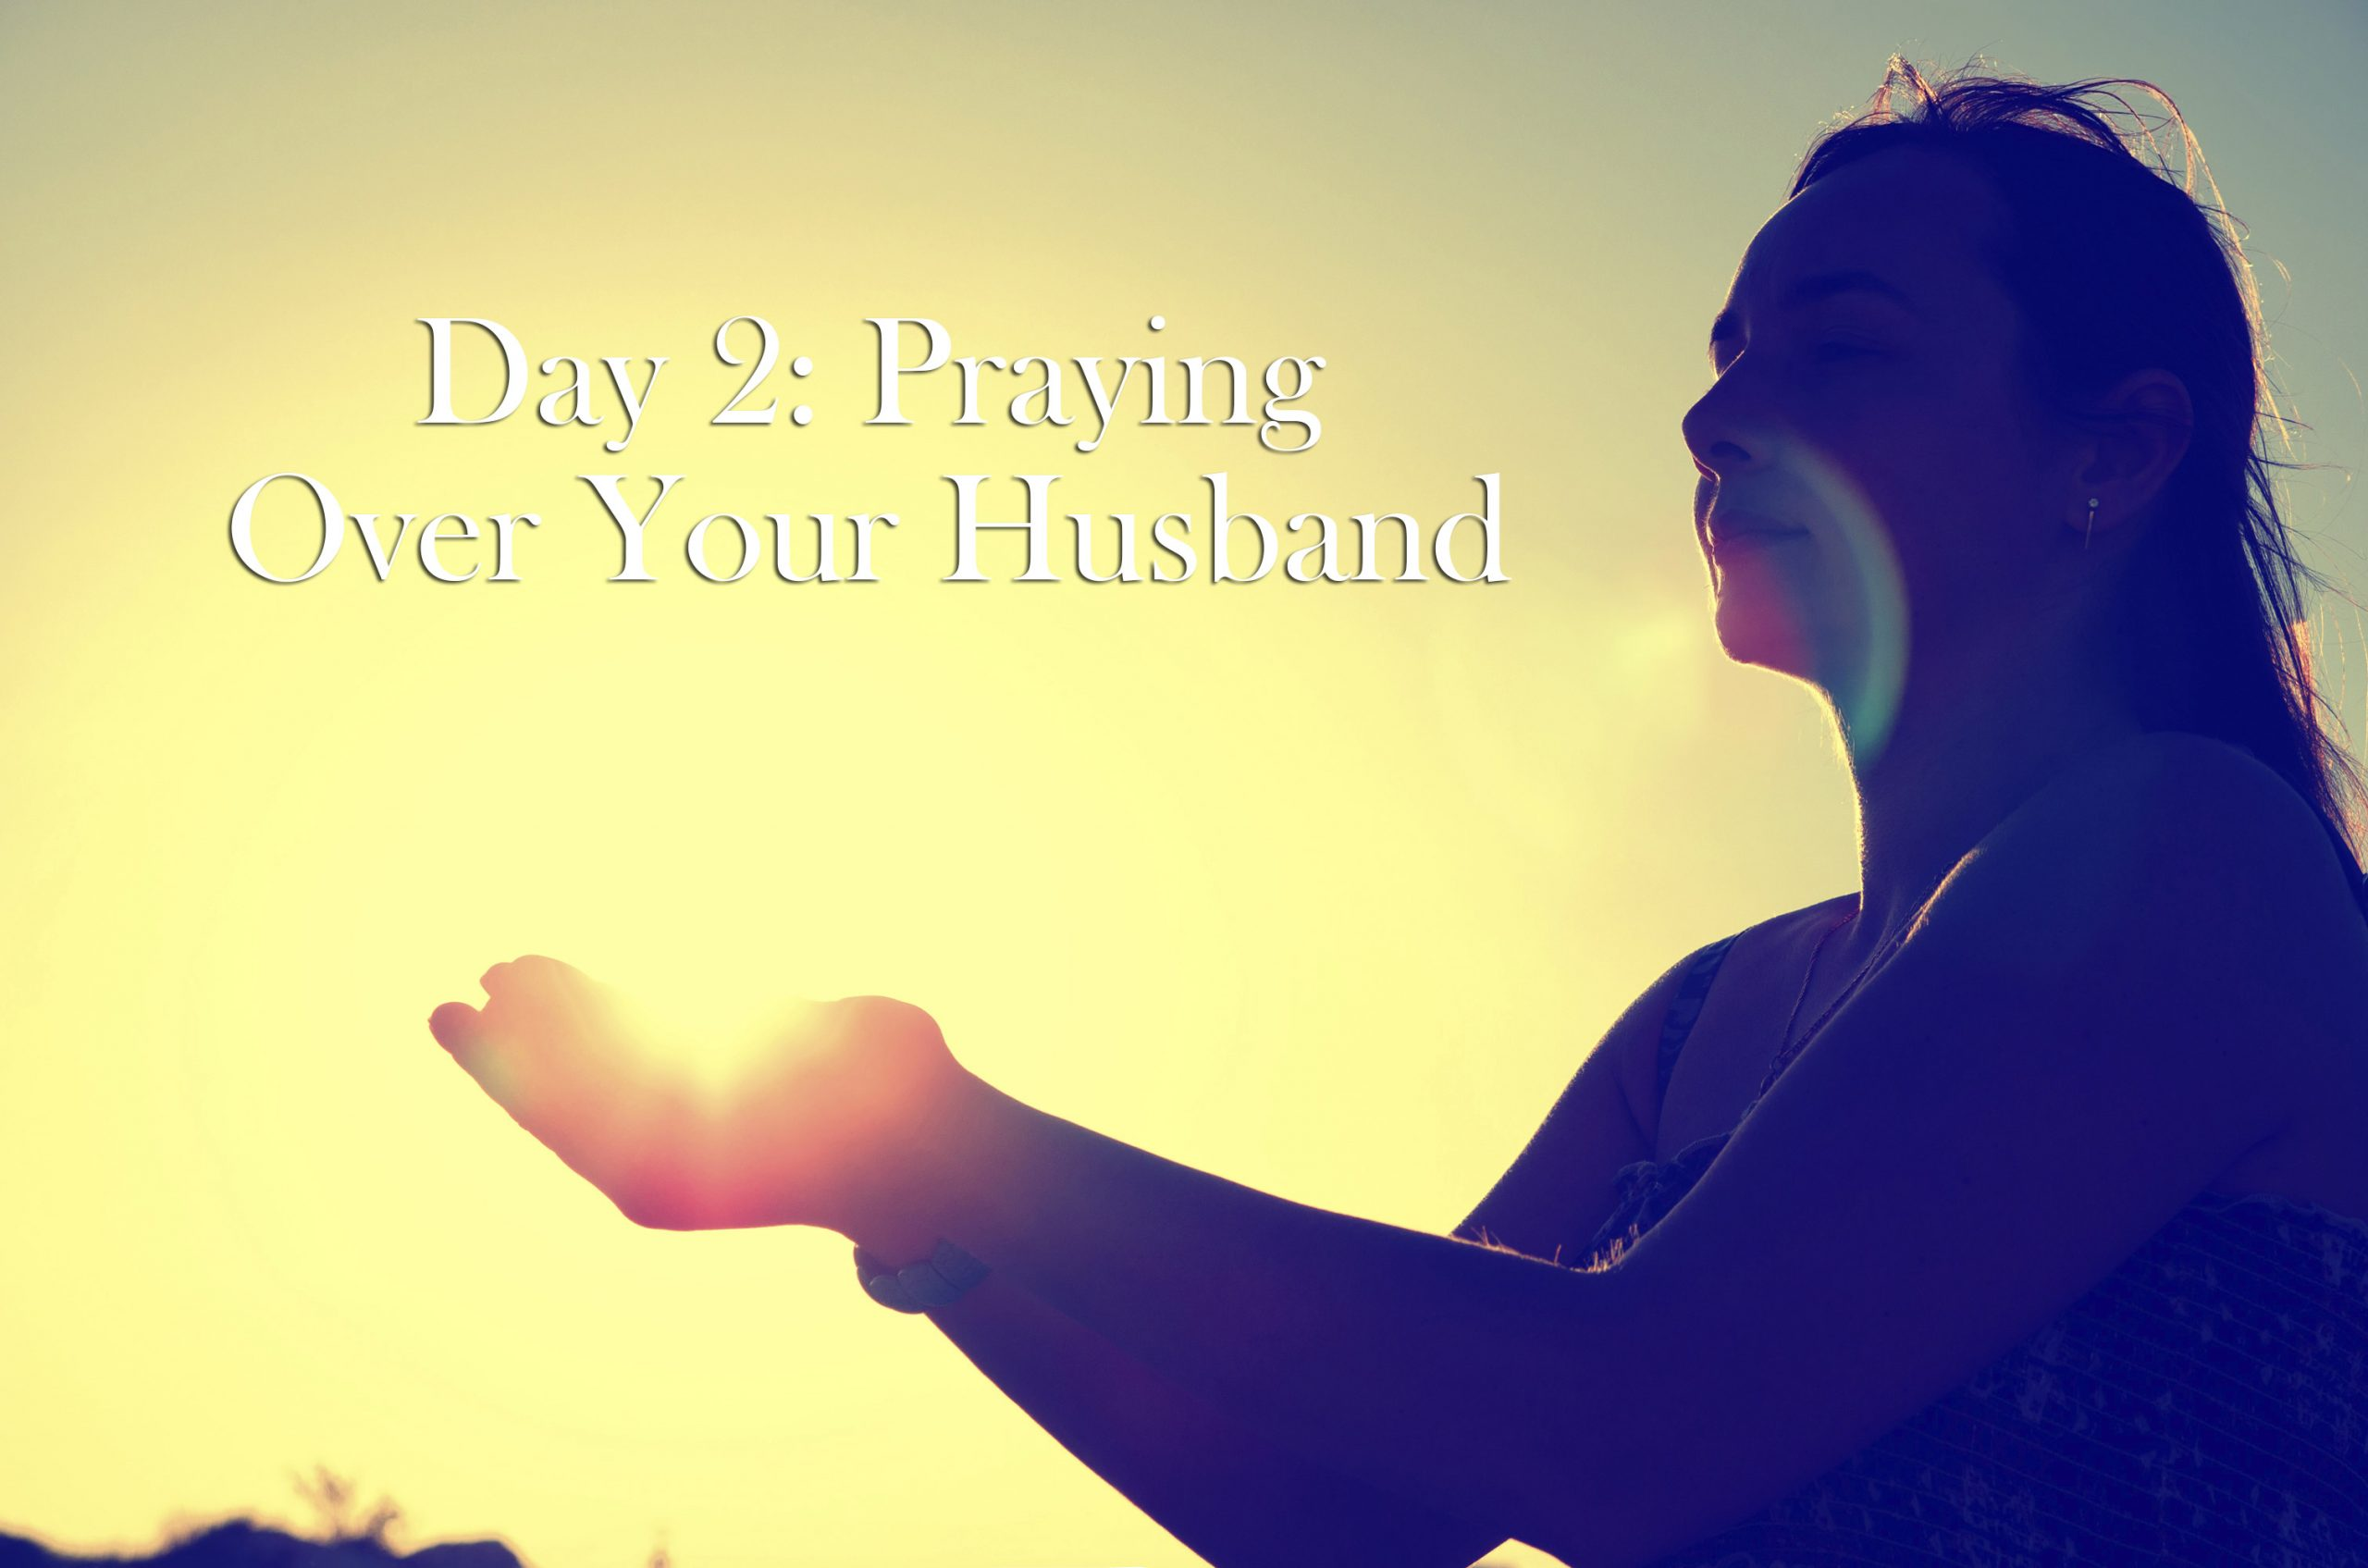 Day 2: Praying Over Your Husband